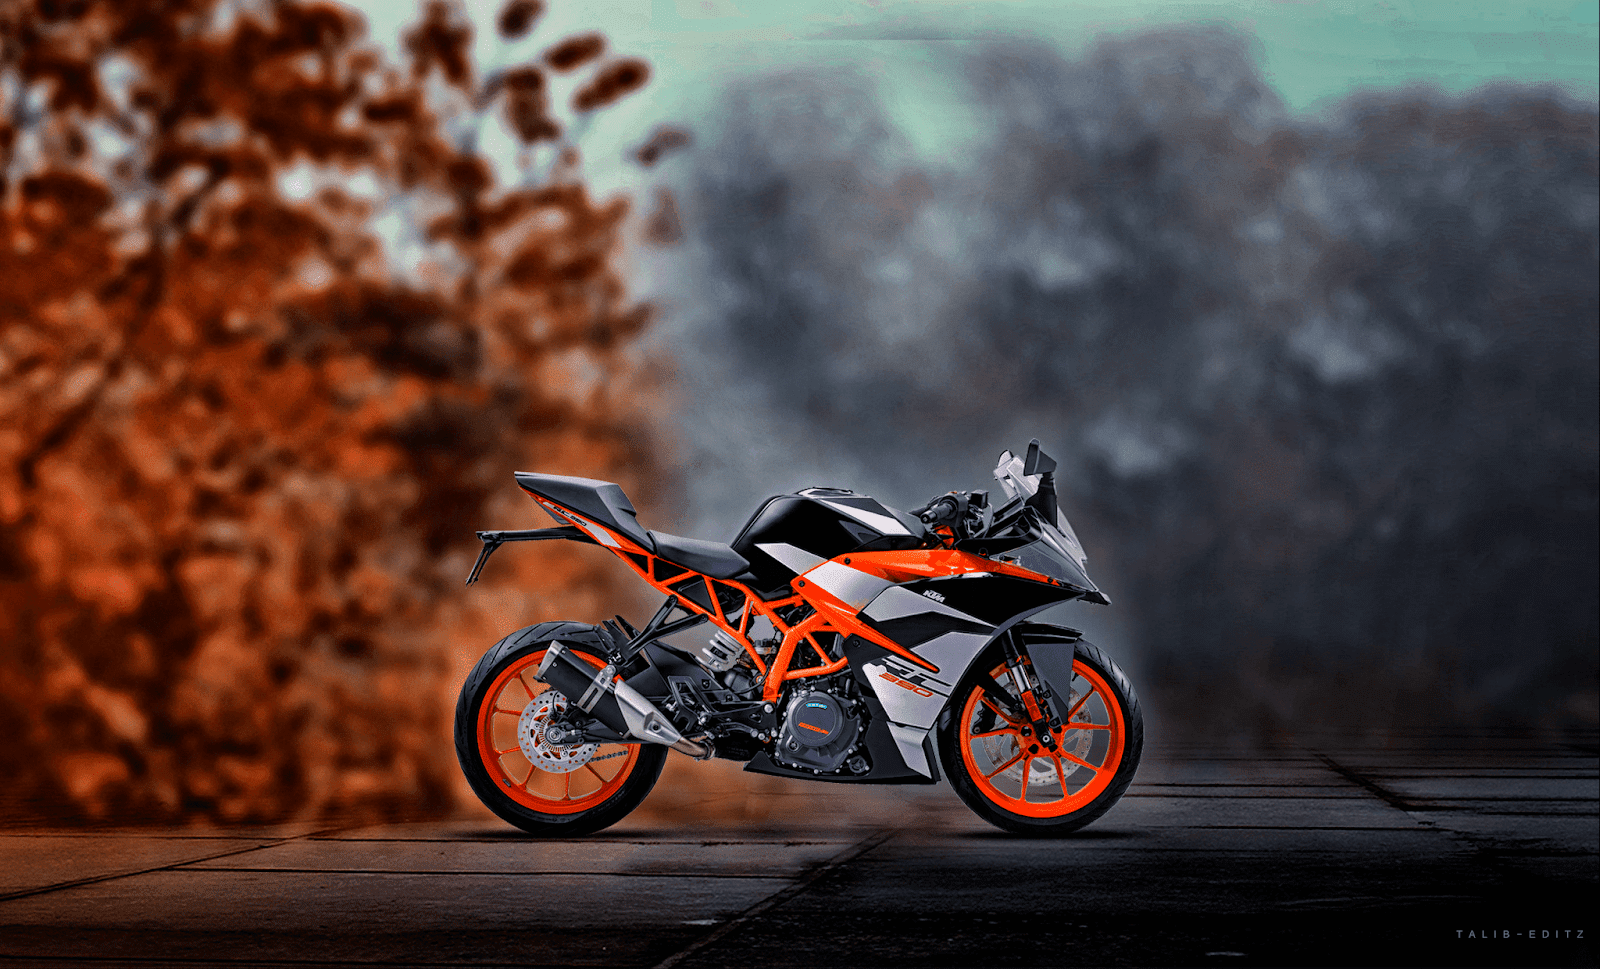 Cb Bike Background 2018 2 Ritesh Creations: 2018 New HD CB Background Download Here